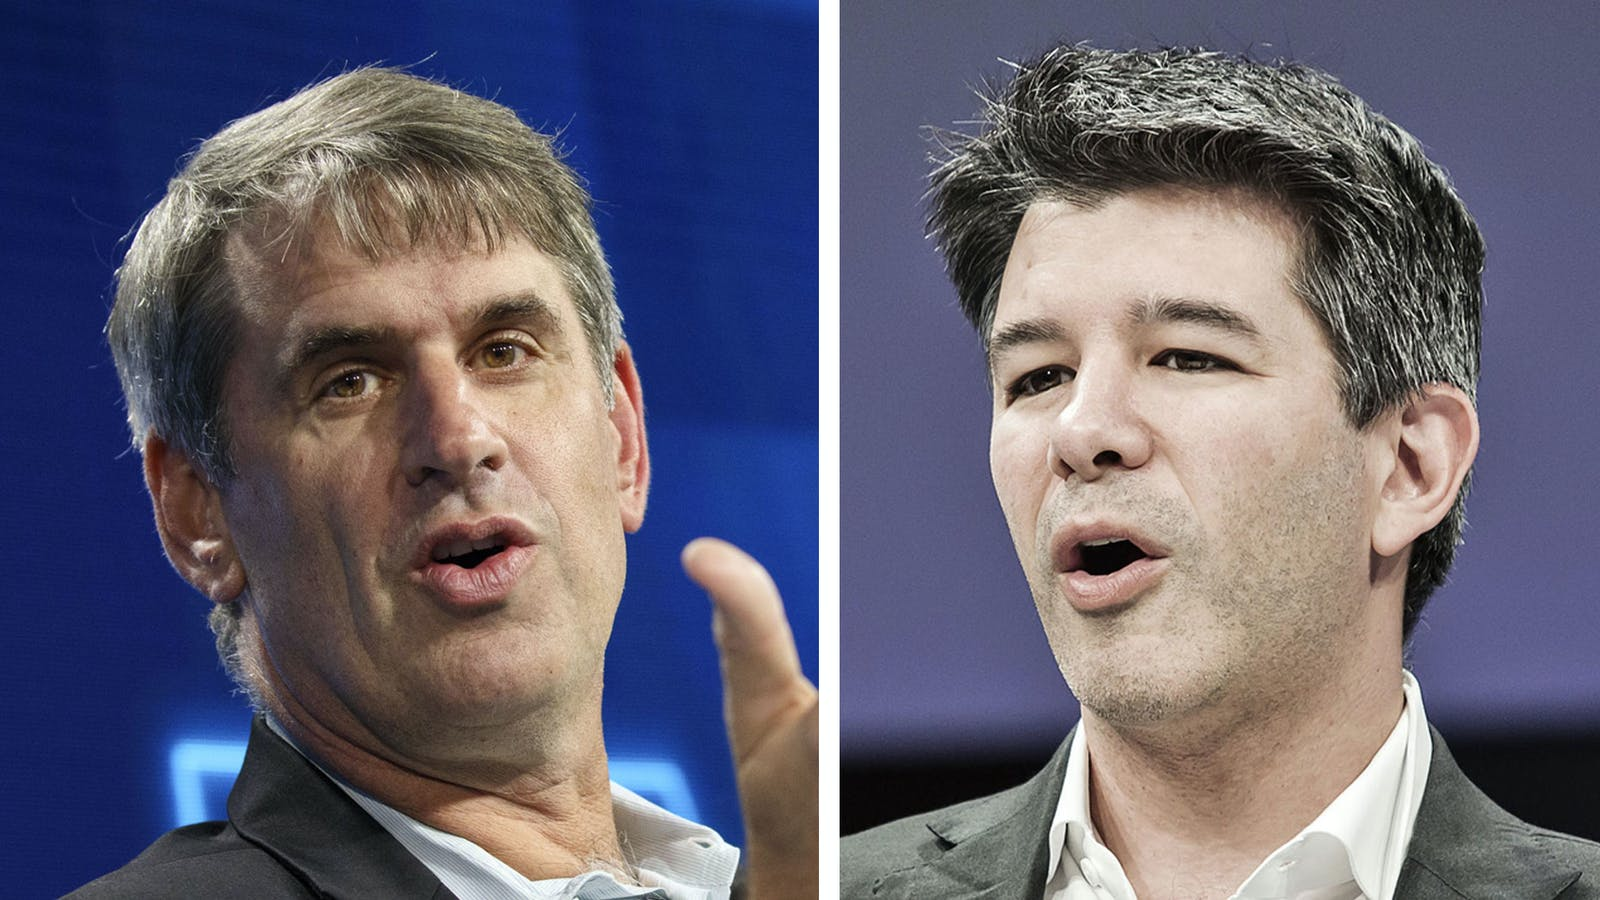 Benchmark partner Bill Gurley (left) and former CEO Travis Kalanick. Photos by Bloomberg.